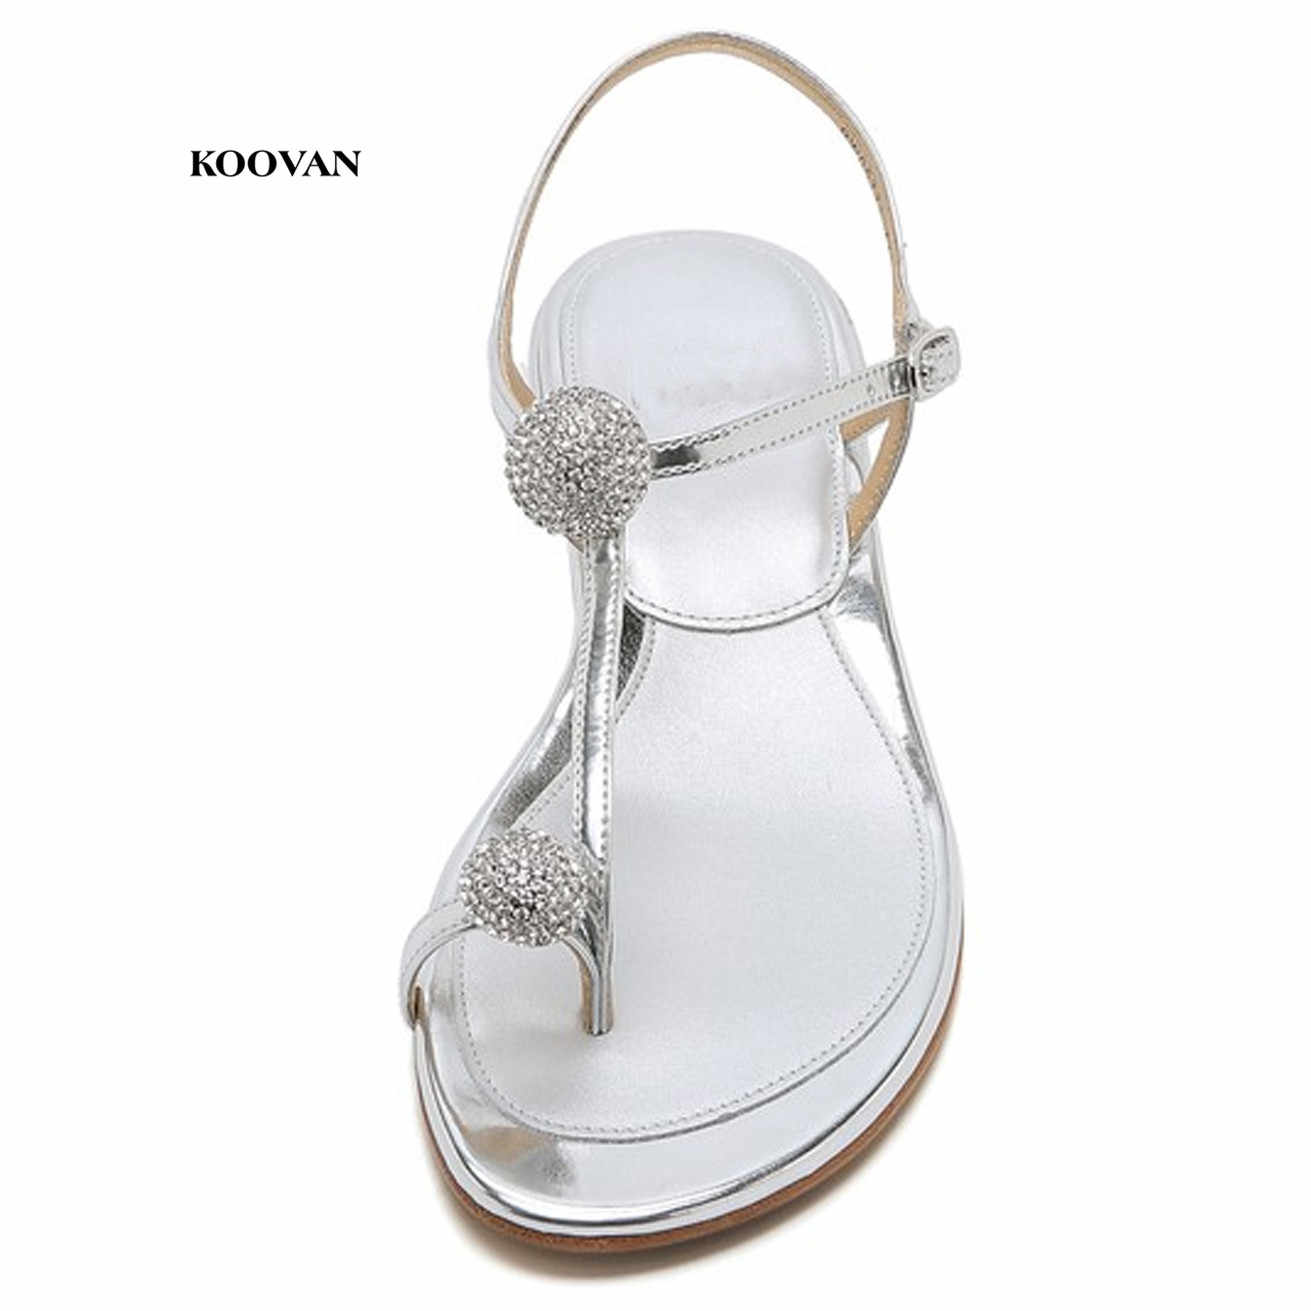 7a125a312f1924 Koovan Women s Sandals 2018 New Summer Rhinestone Ball Toe Shoes With  Low-heeled Sandals Flat